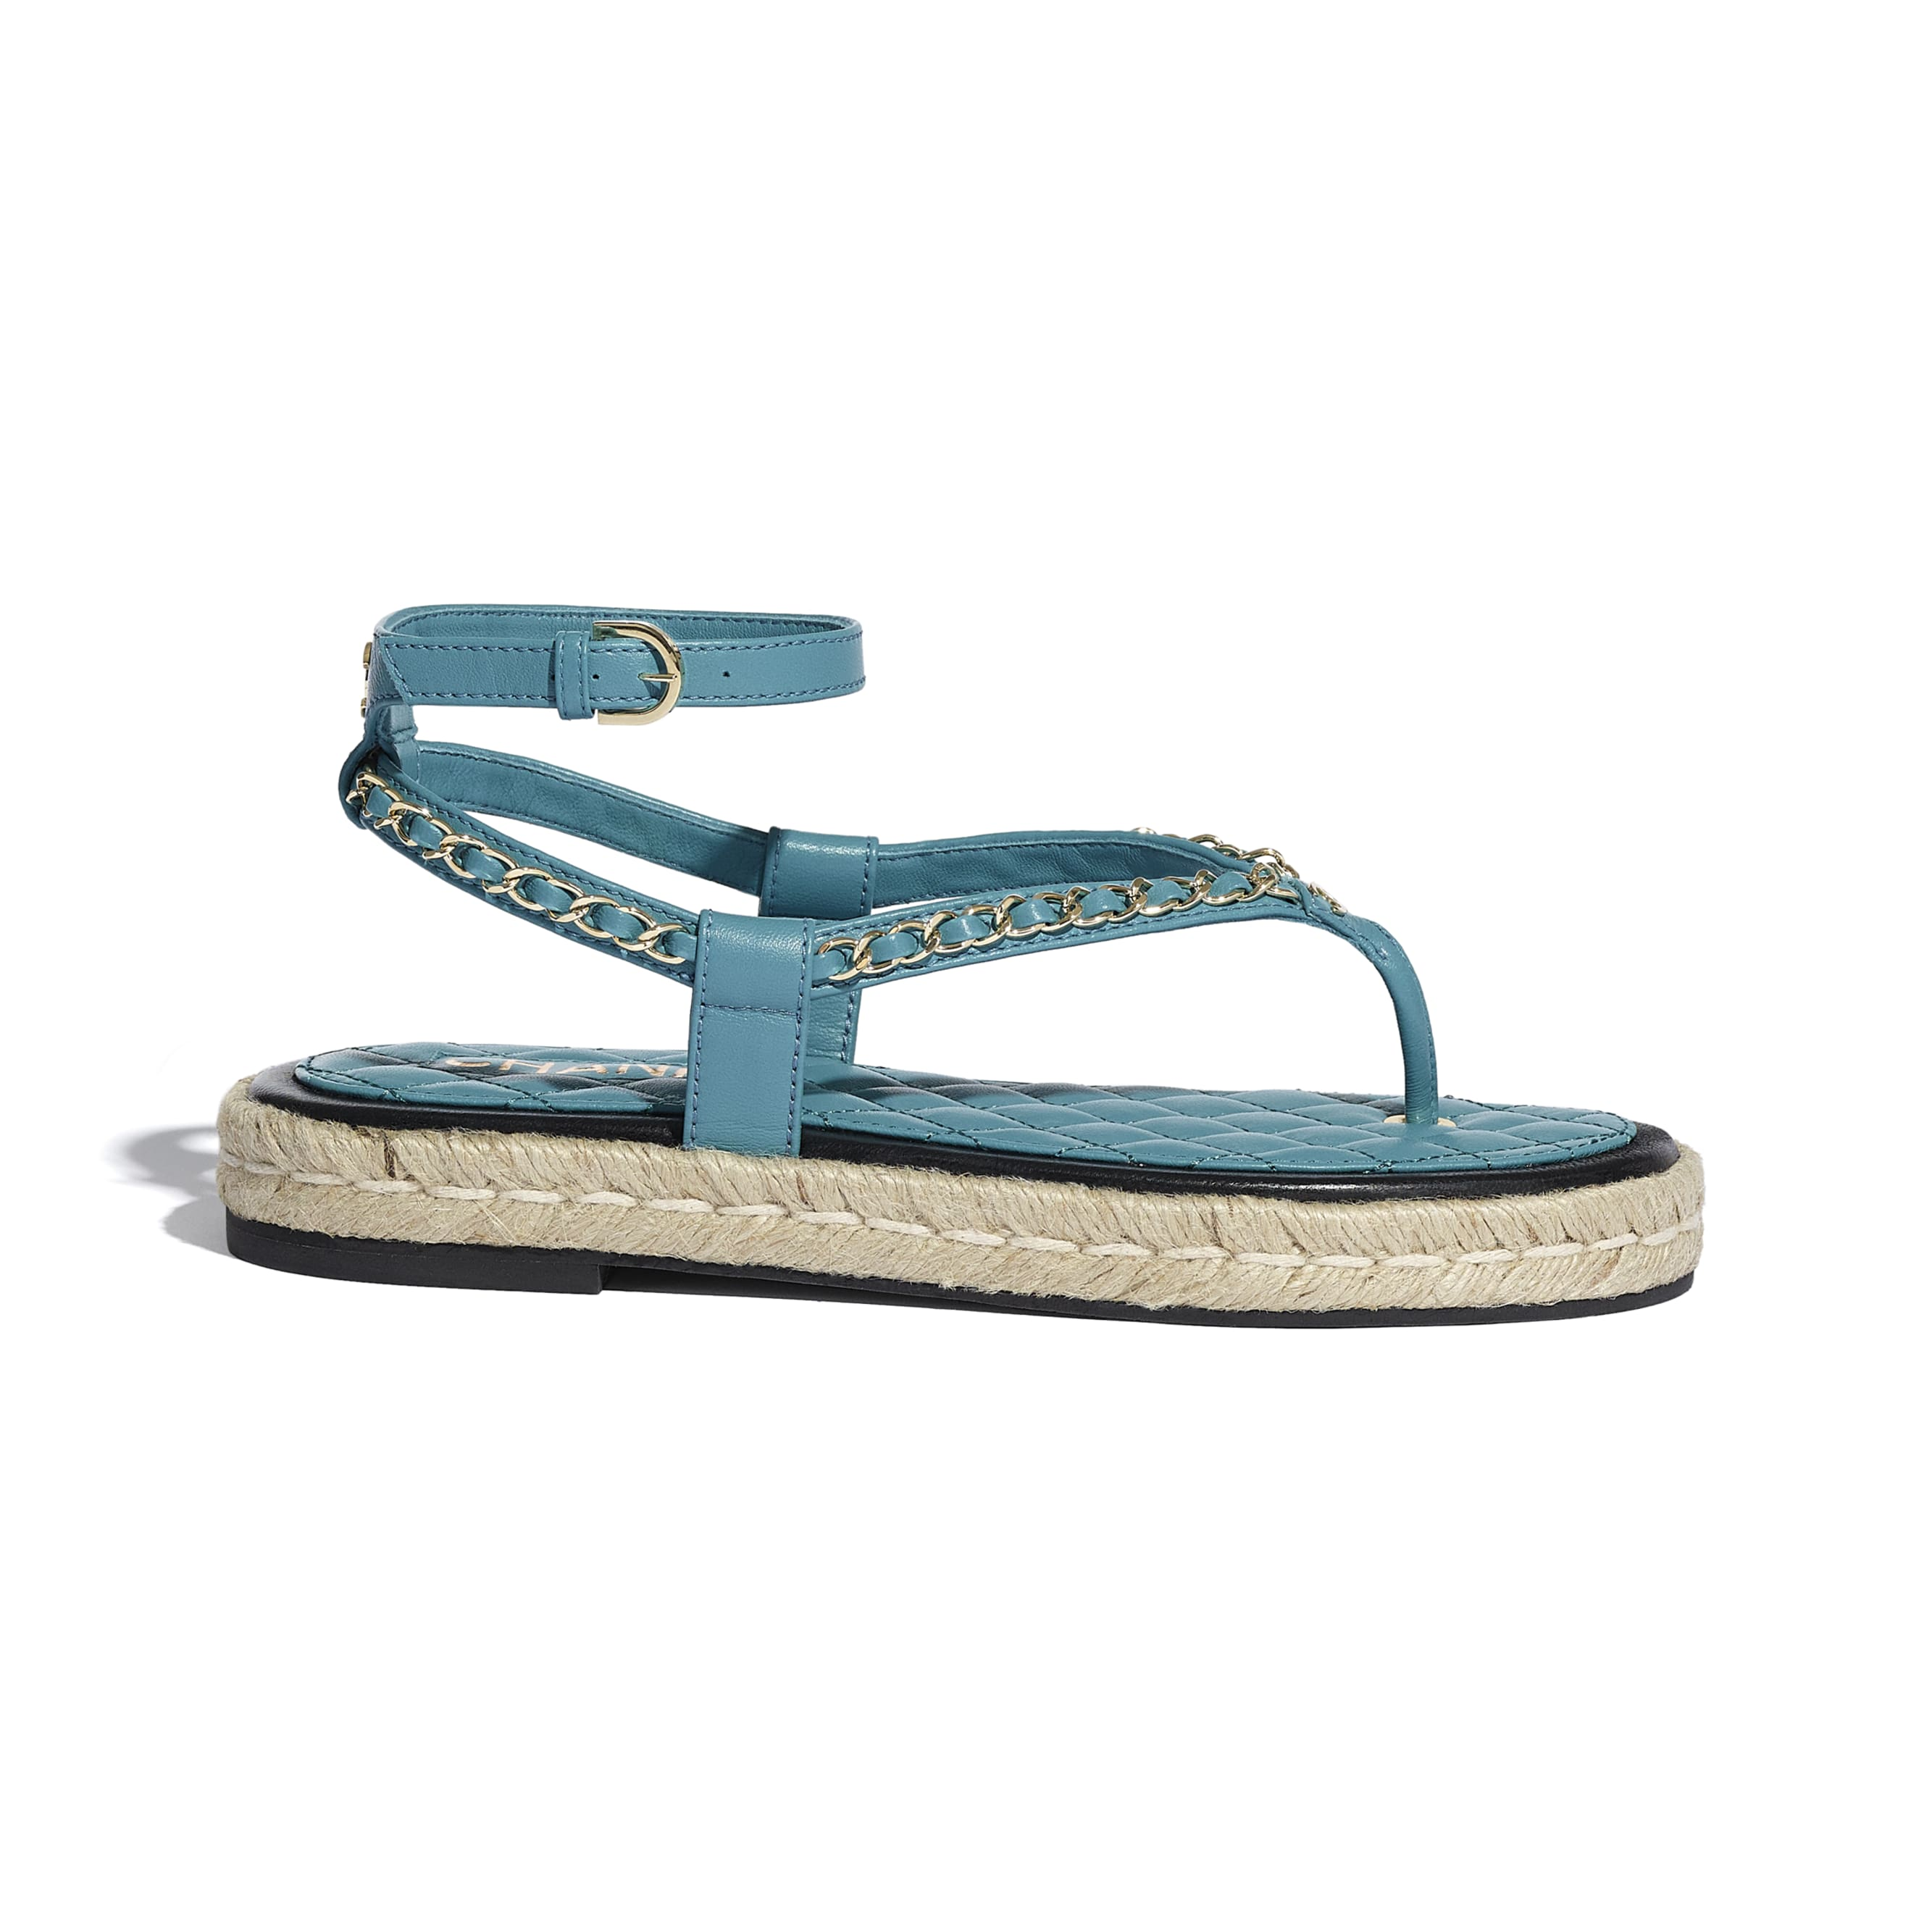 Sandals - Turquoise - Lambskin - CHANEL - Default view - see standard sized version